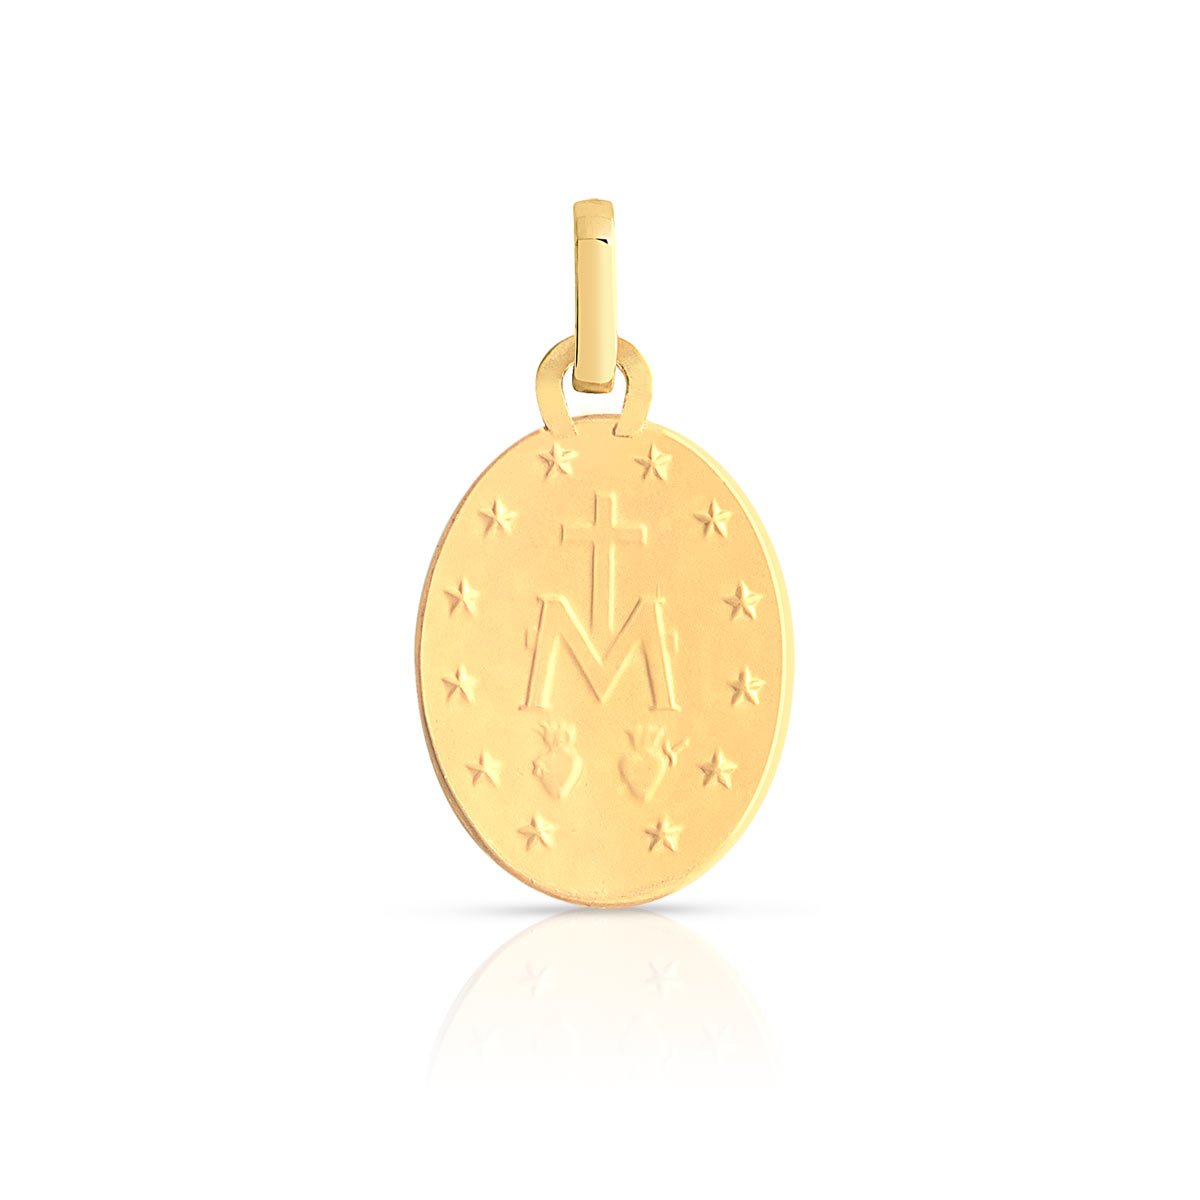 Médaille or 750 jaune vierge miraculeuse - vue VD1